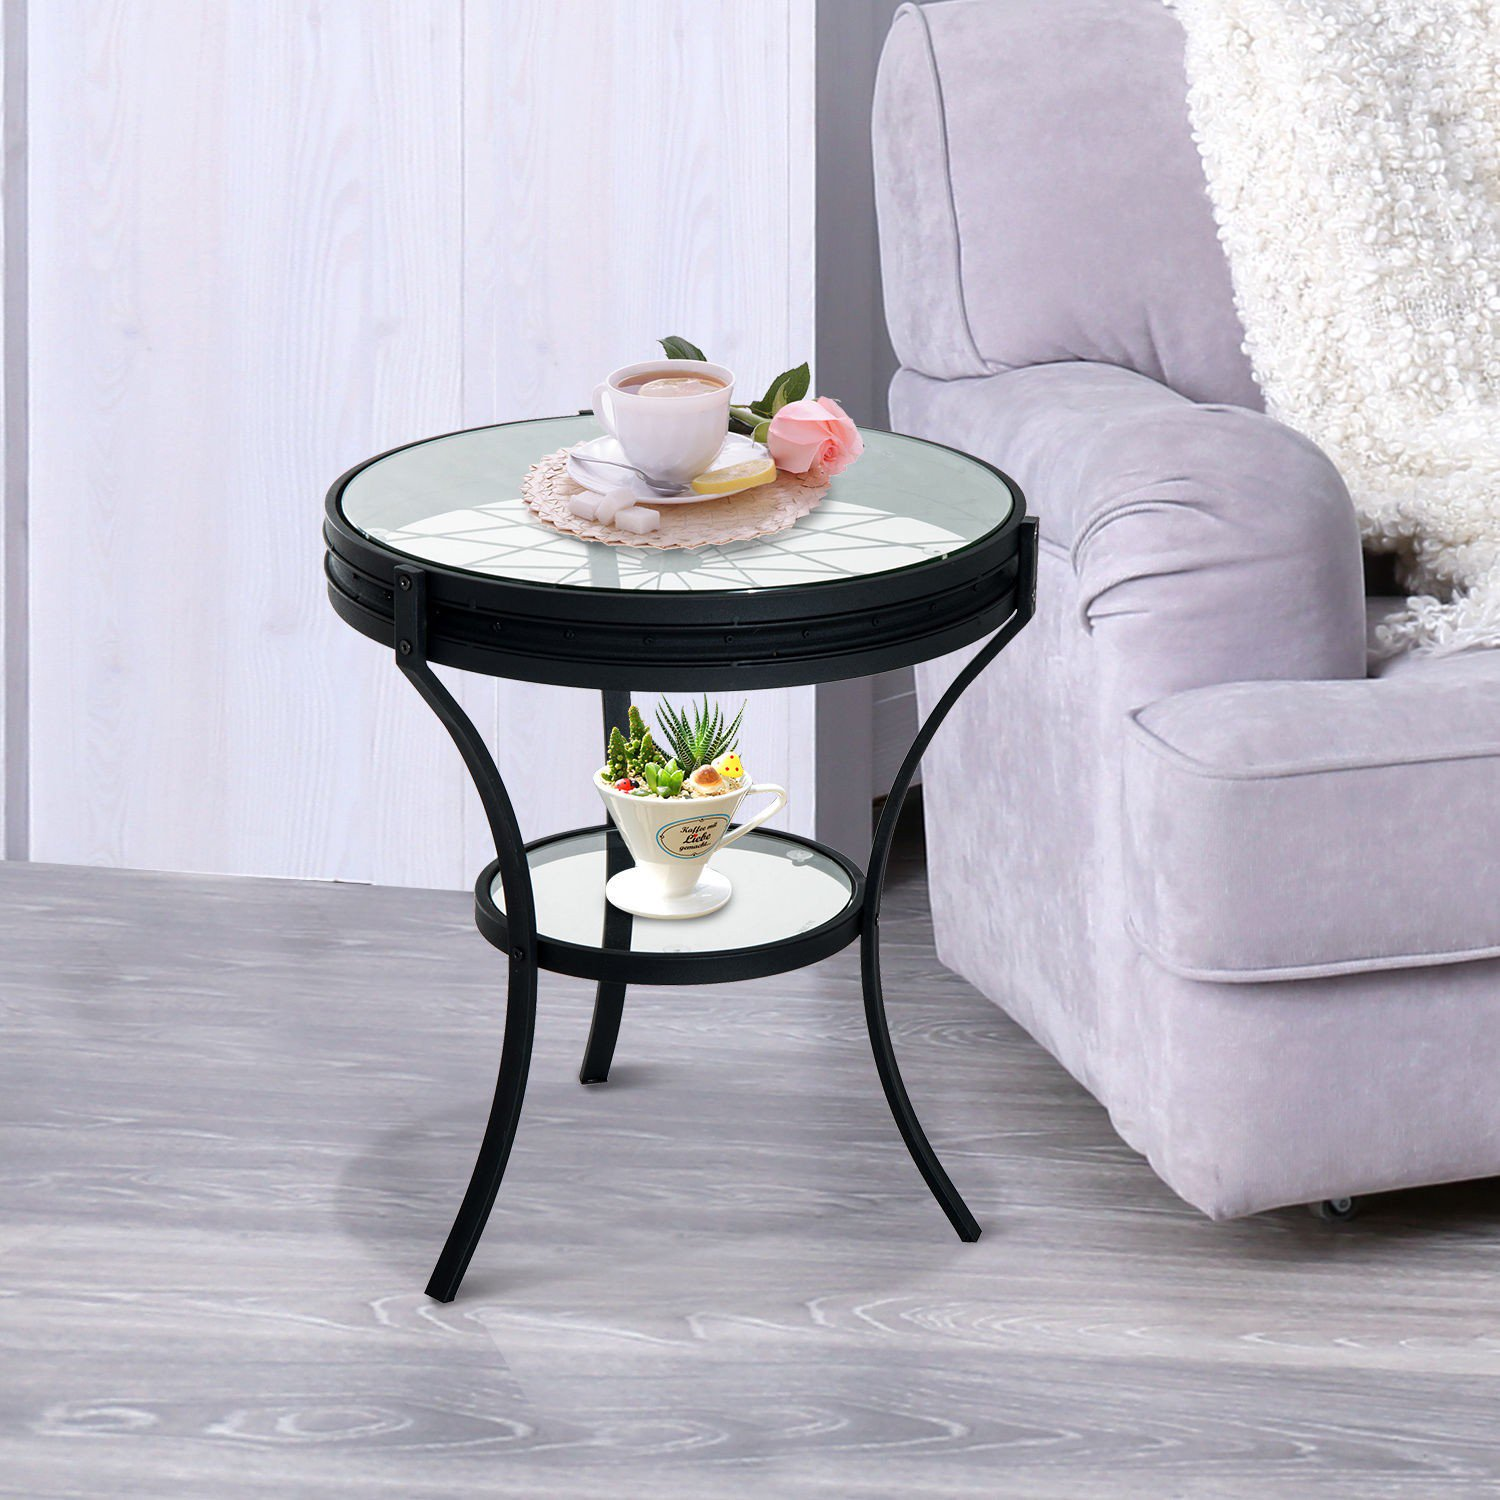 homcom round metal glass top bicycle wheel accent end table home goods tables target gold console knobs white patio wooden lamp legs square dining room modern buffet bayside